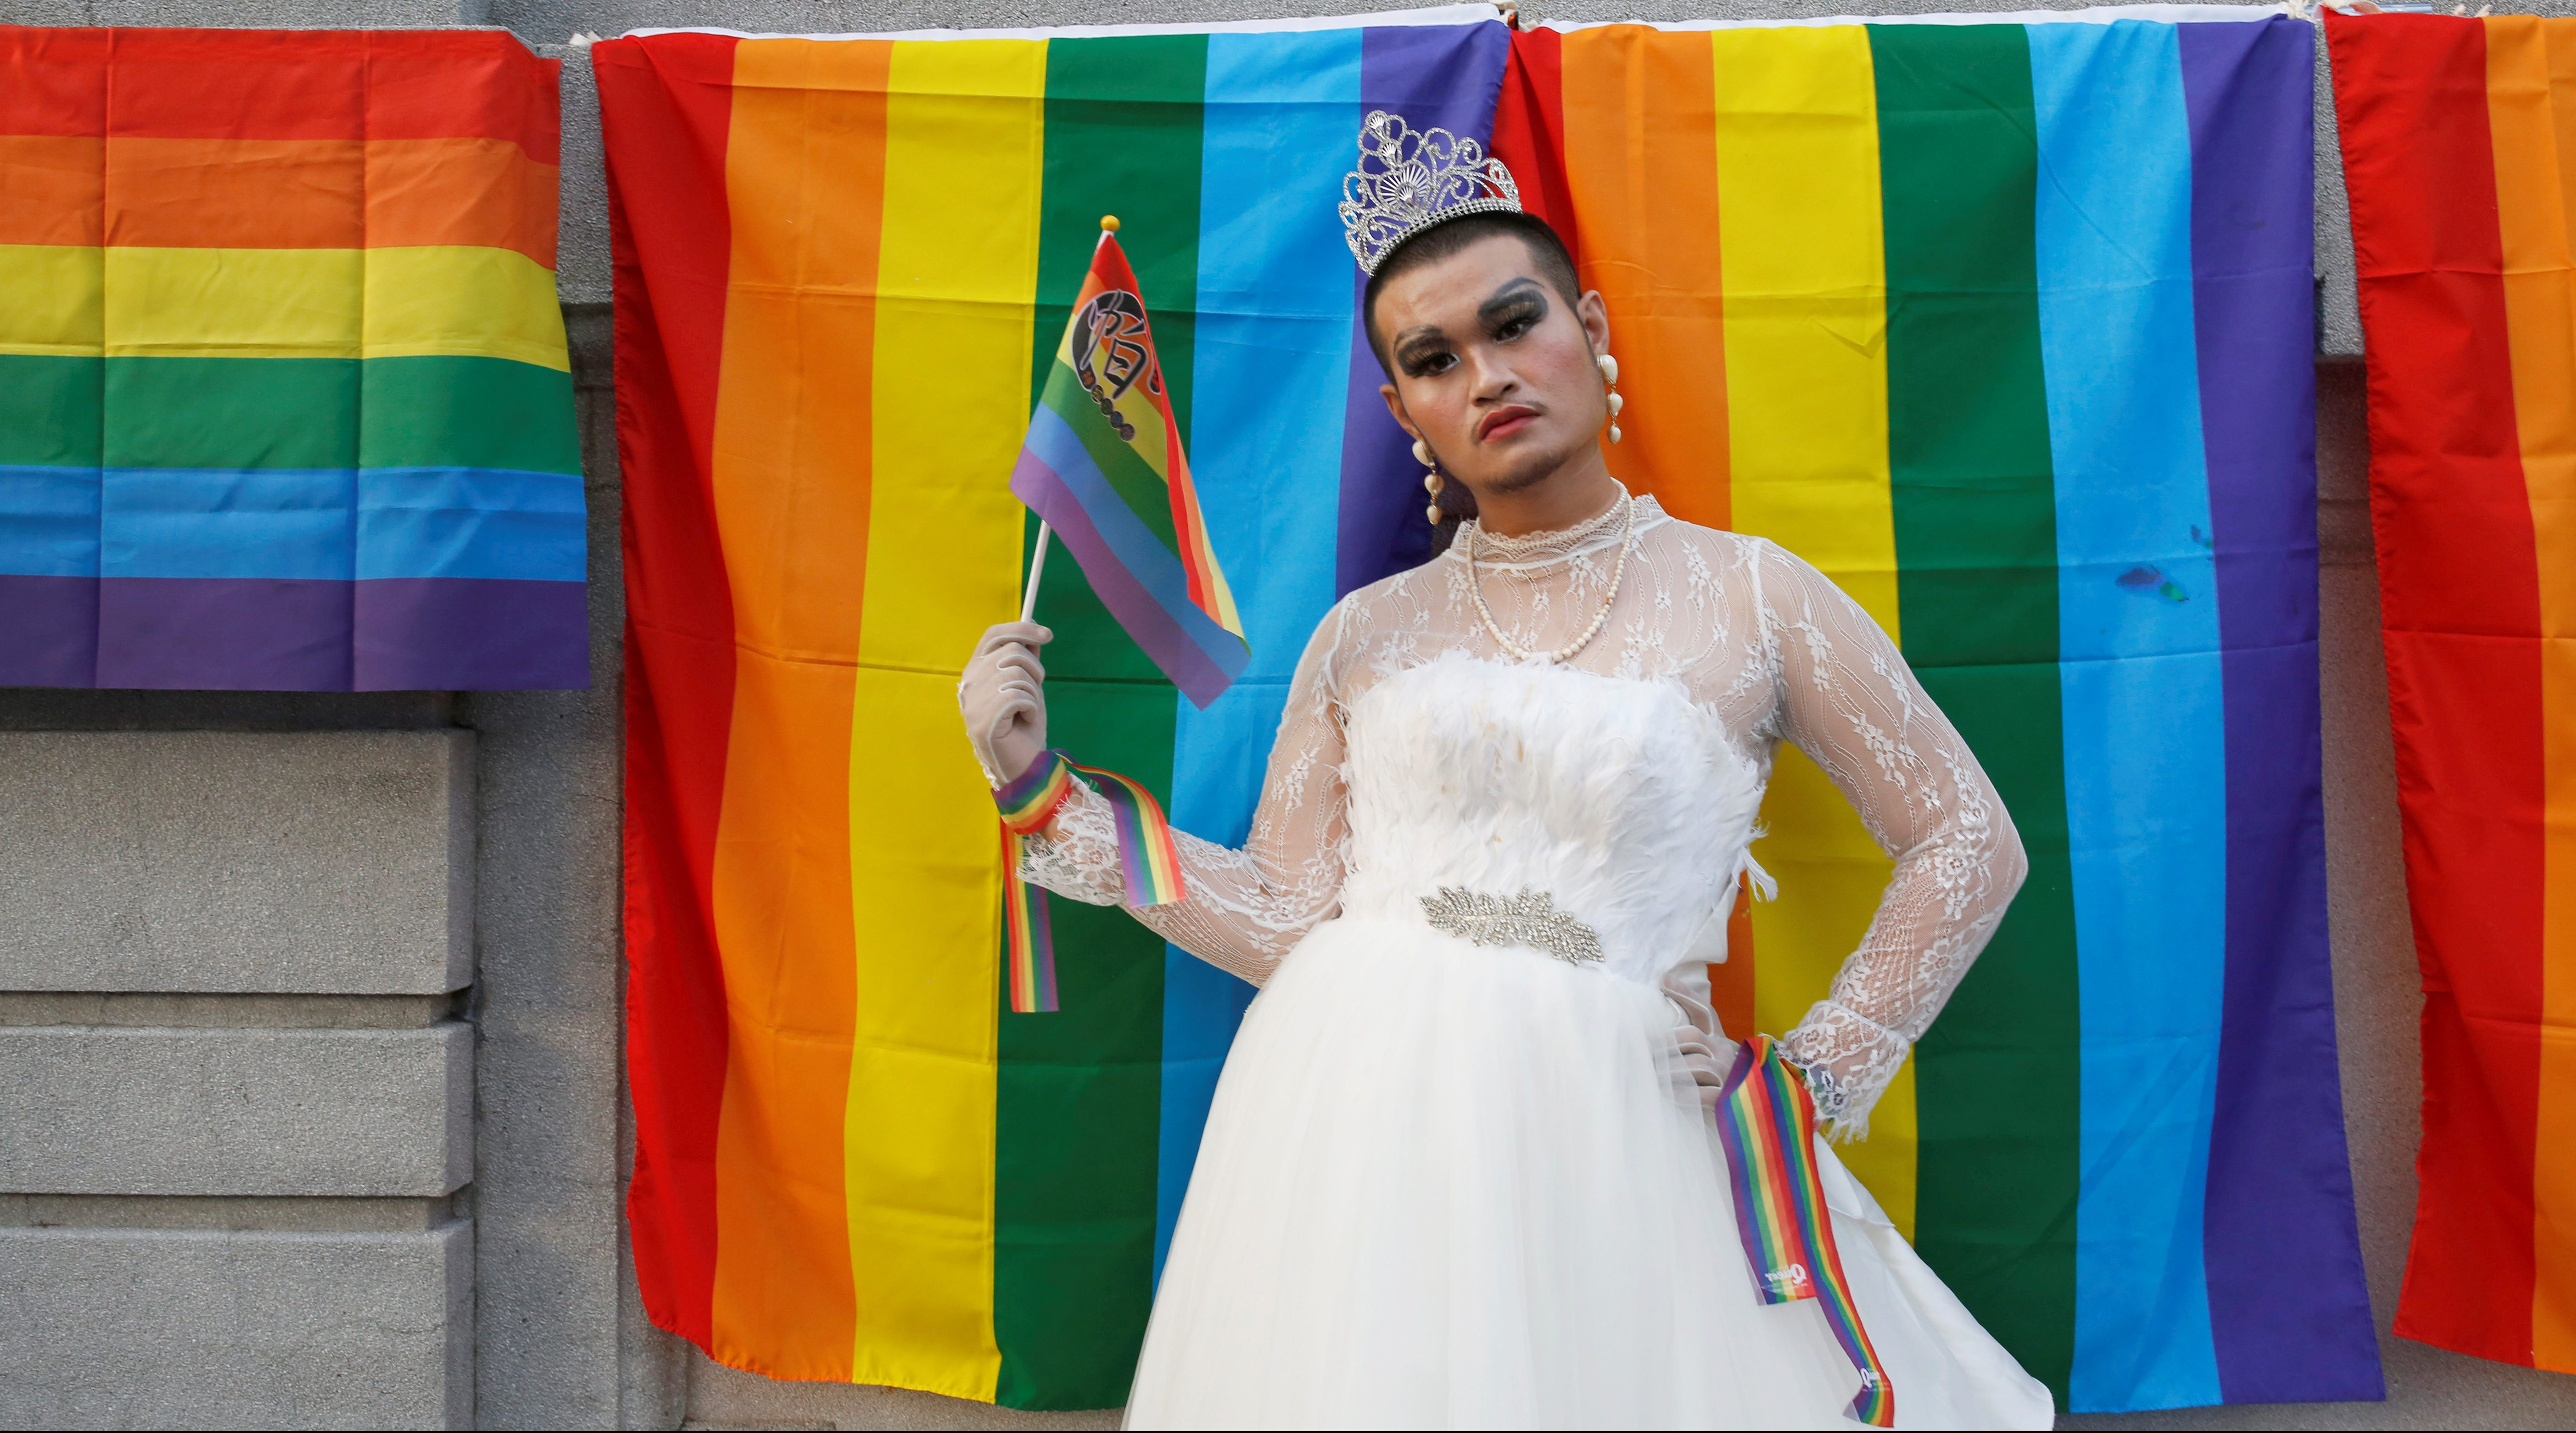 A participant wearing wedding dress takes part in a lesbian, gay, bisexual and transgender (LGBT) pride parade in Taipei